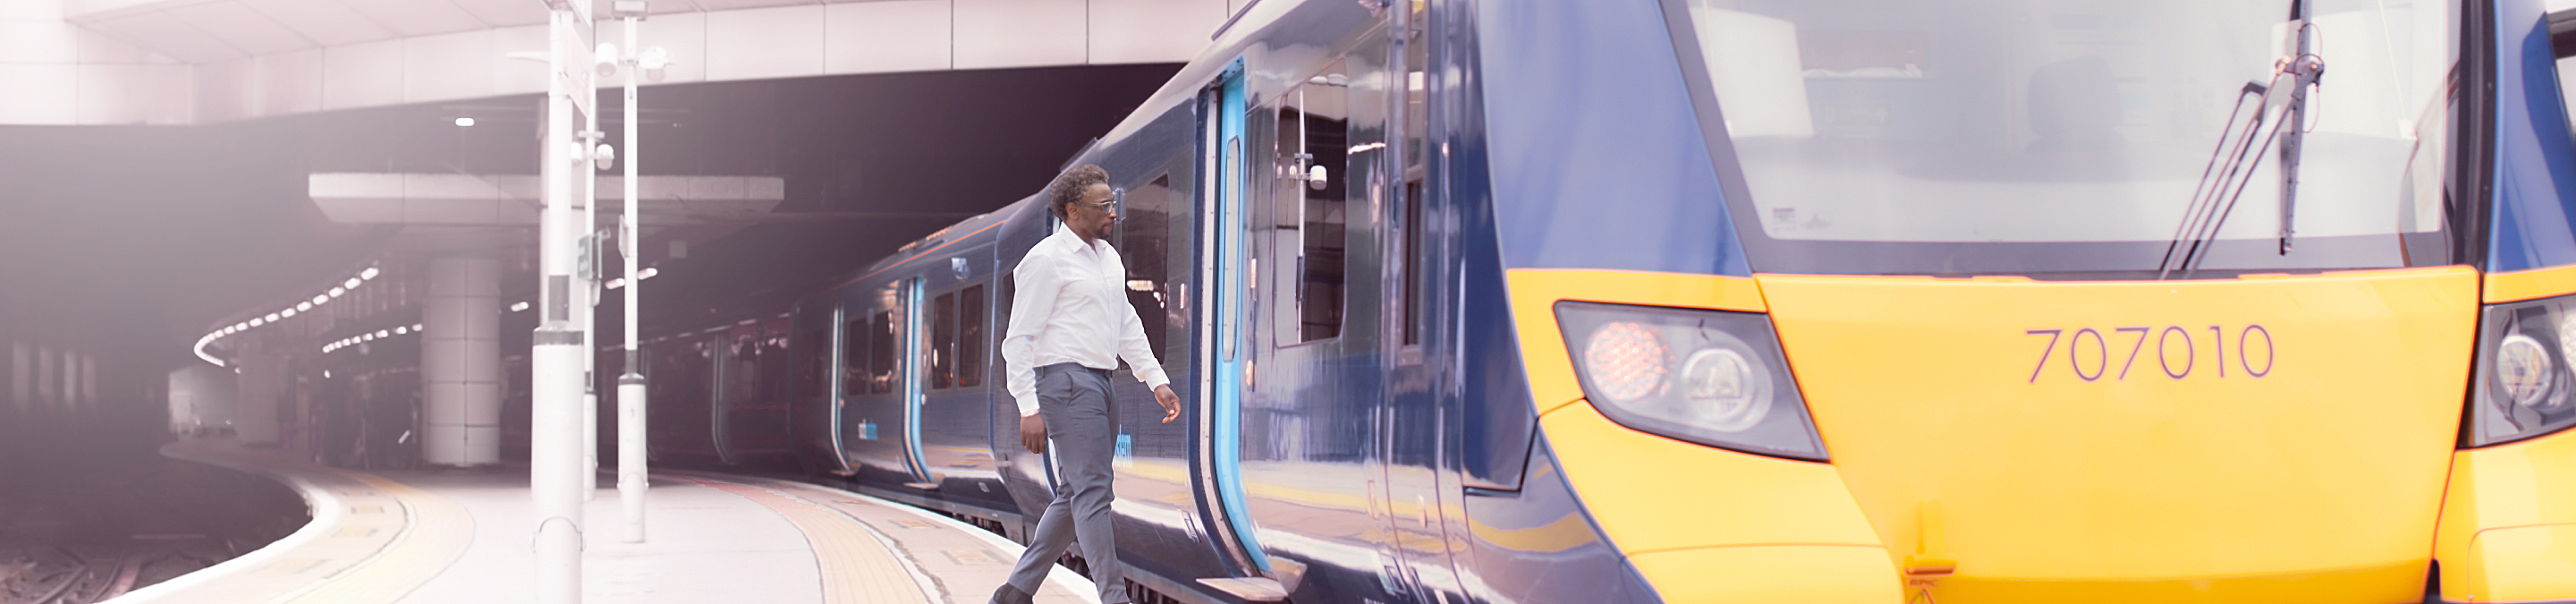 Introducing the Class 707 for Southeastern passengers